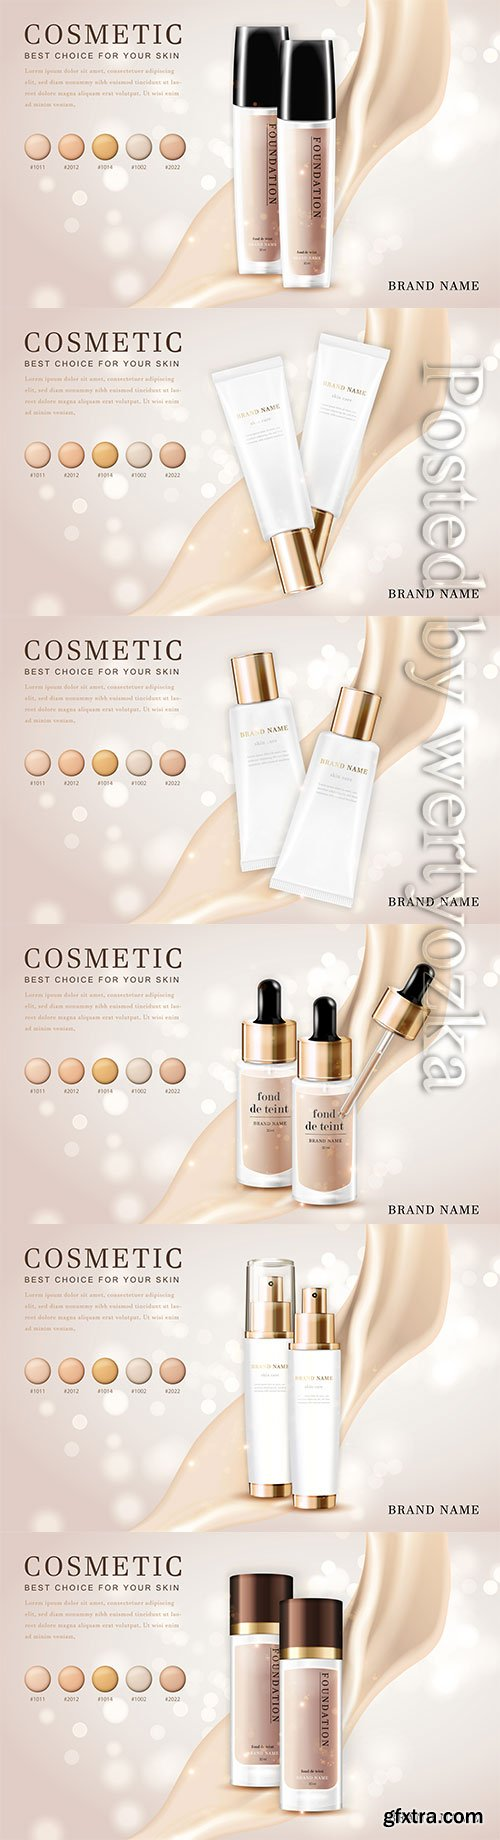 3d cosmetic make up illustration foundation product bottle with creamy